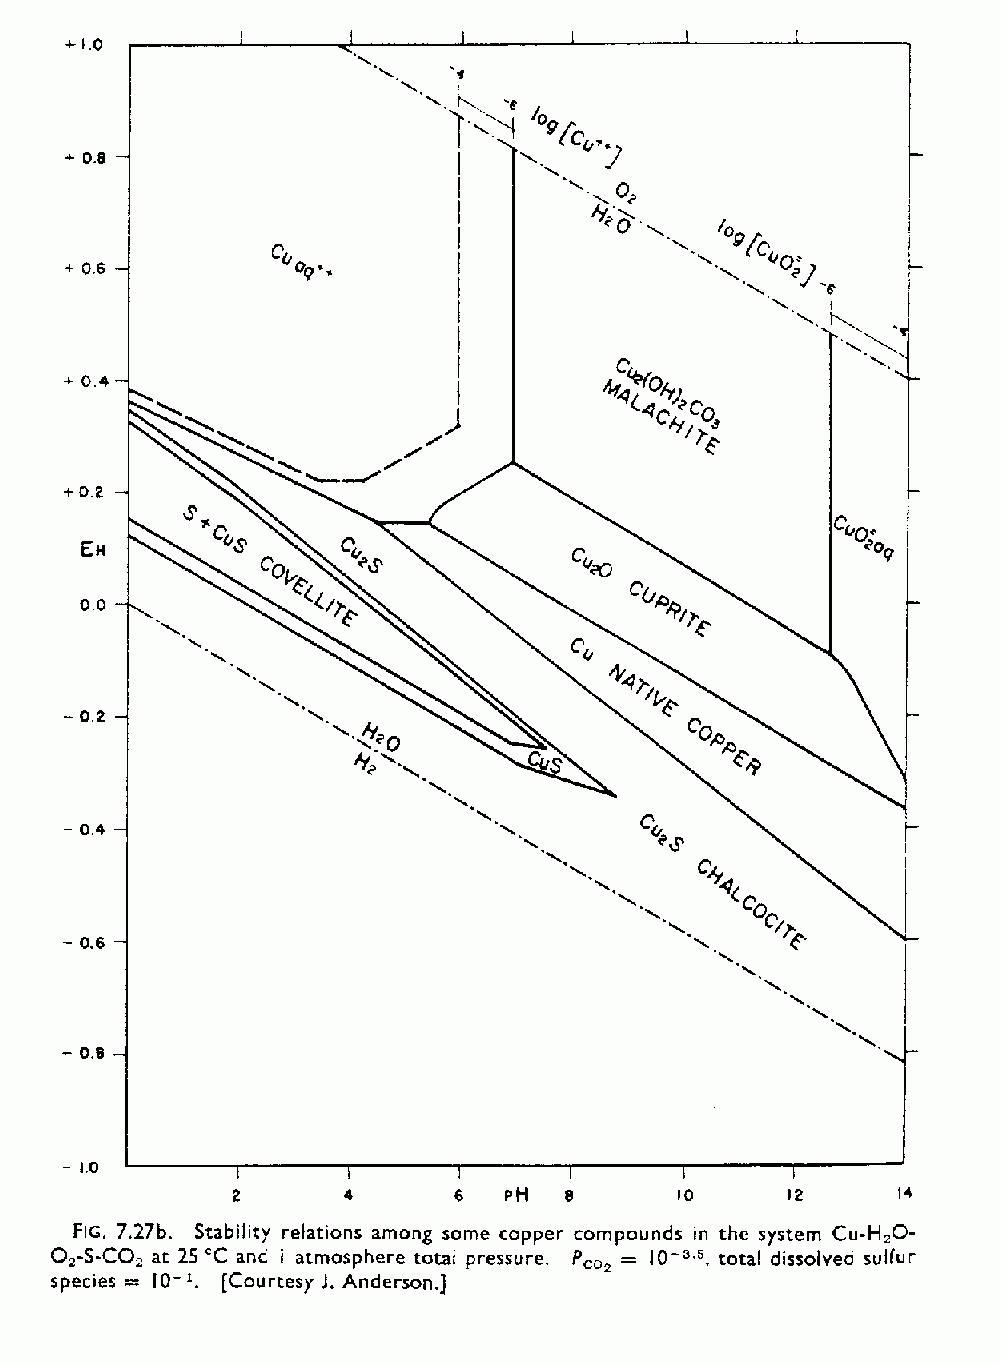 Opal creek wilderness area ruth mine water analysis copper eh ph diagram ccuart Choice Image